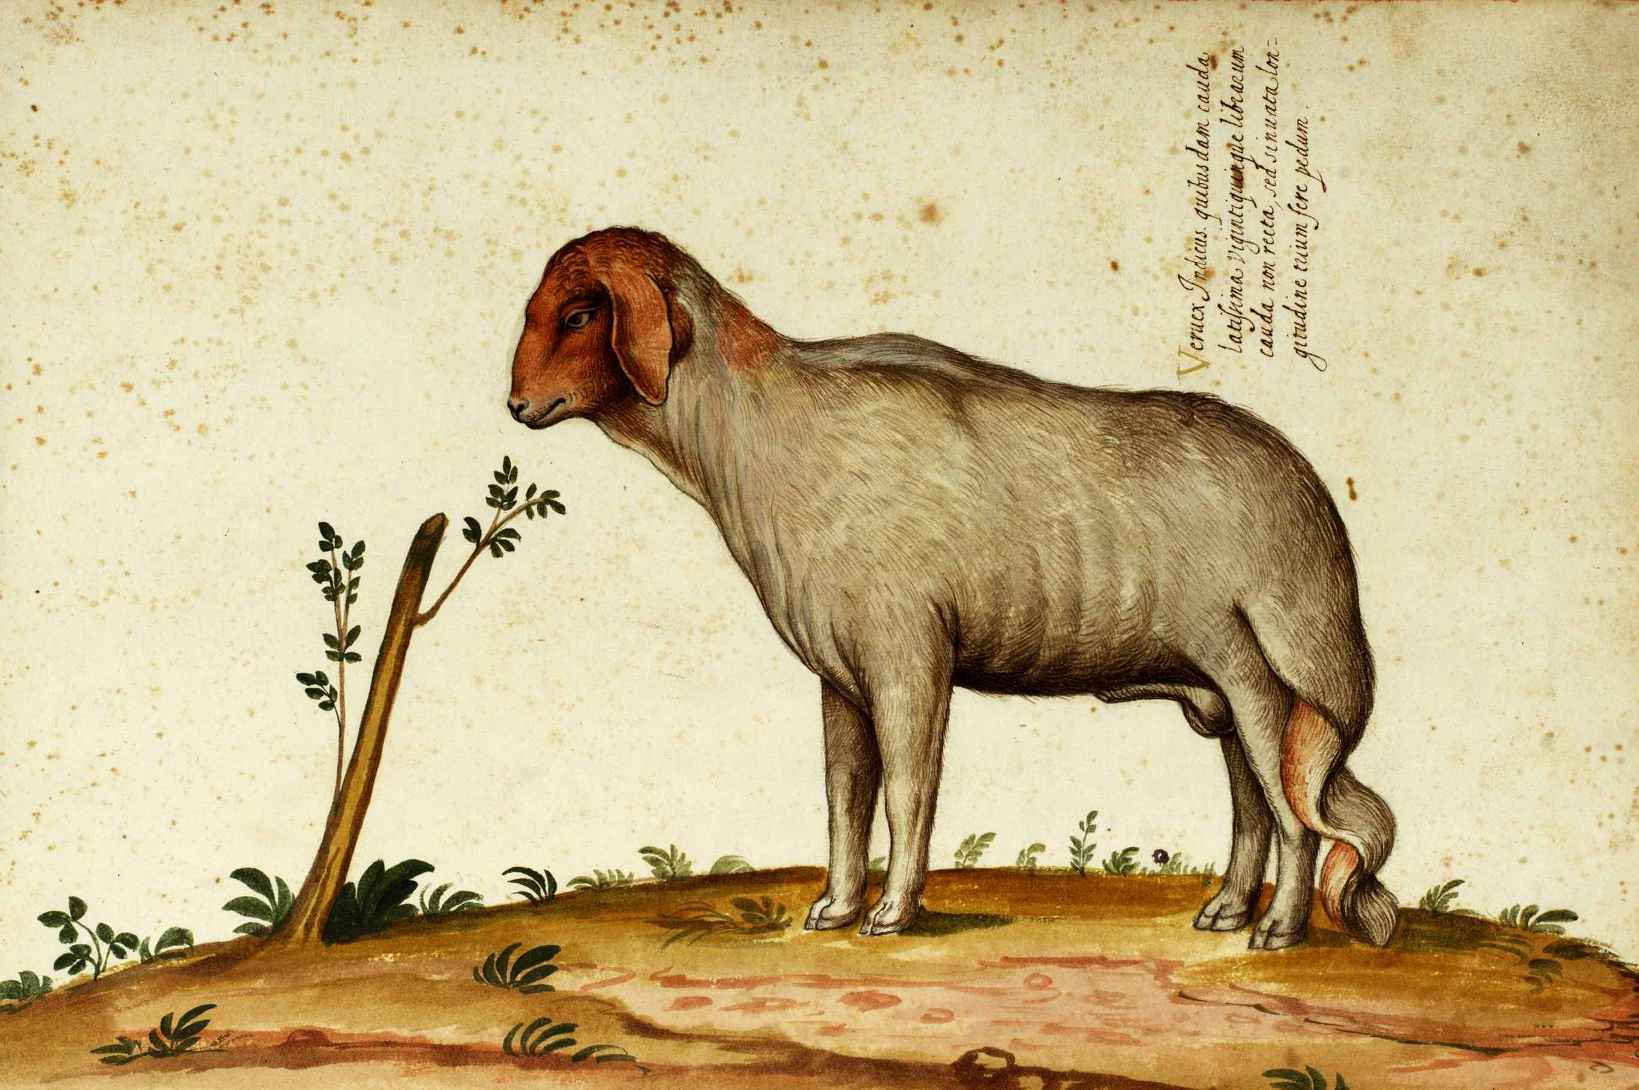 Animal  Range and Farm  Sheep  Deformed  Italian